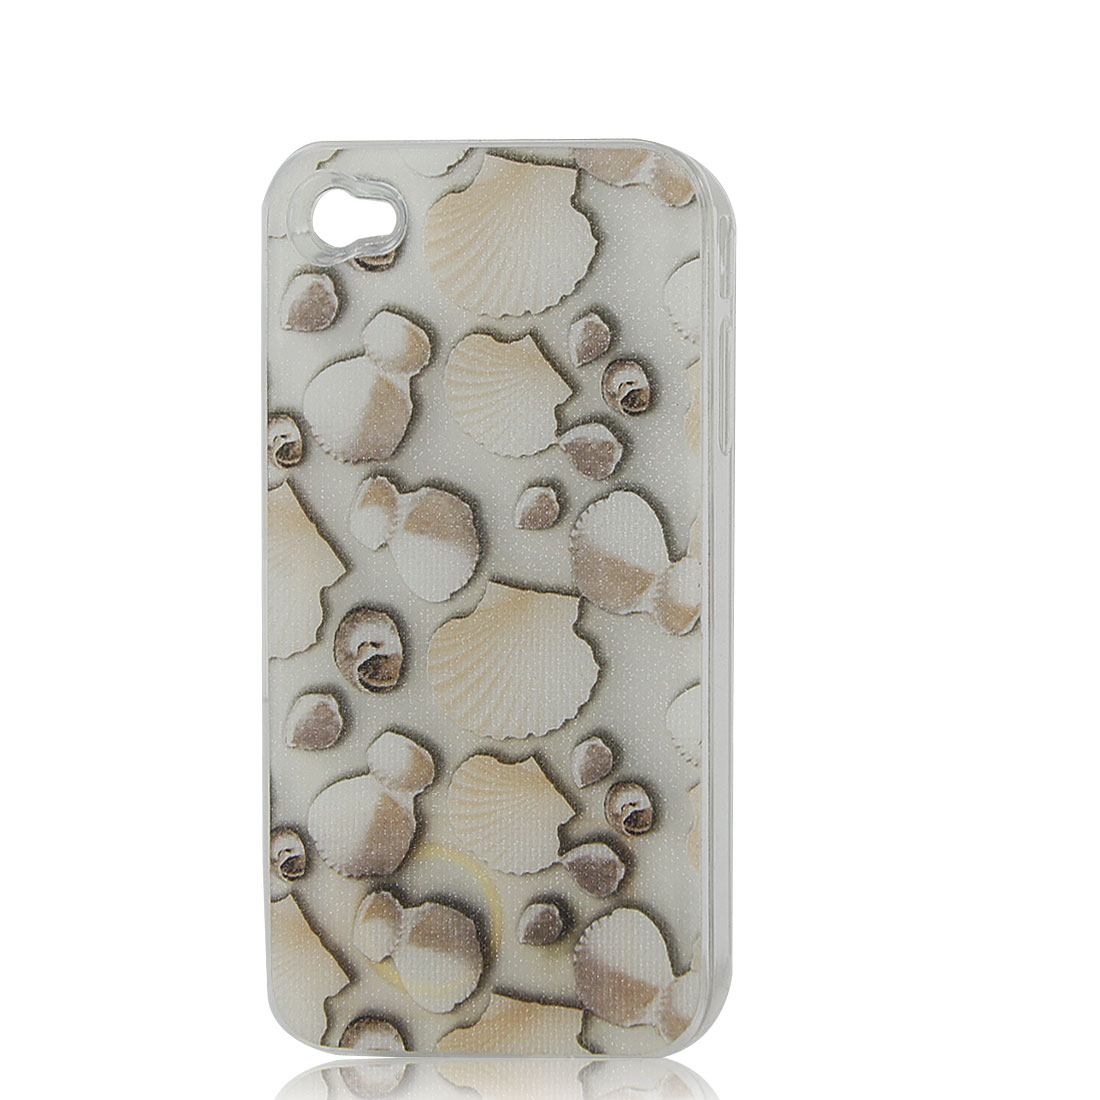 Off White Sea Shell Print Sense Flash Light LED Color Changed Hard Back Case Cover for iPhone 4 4S